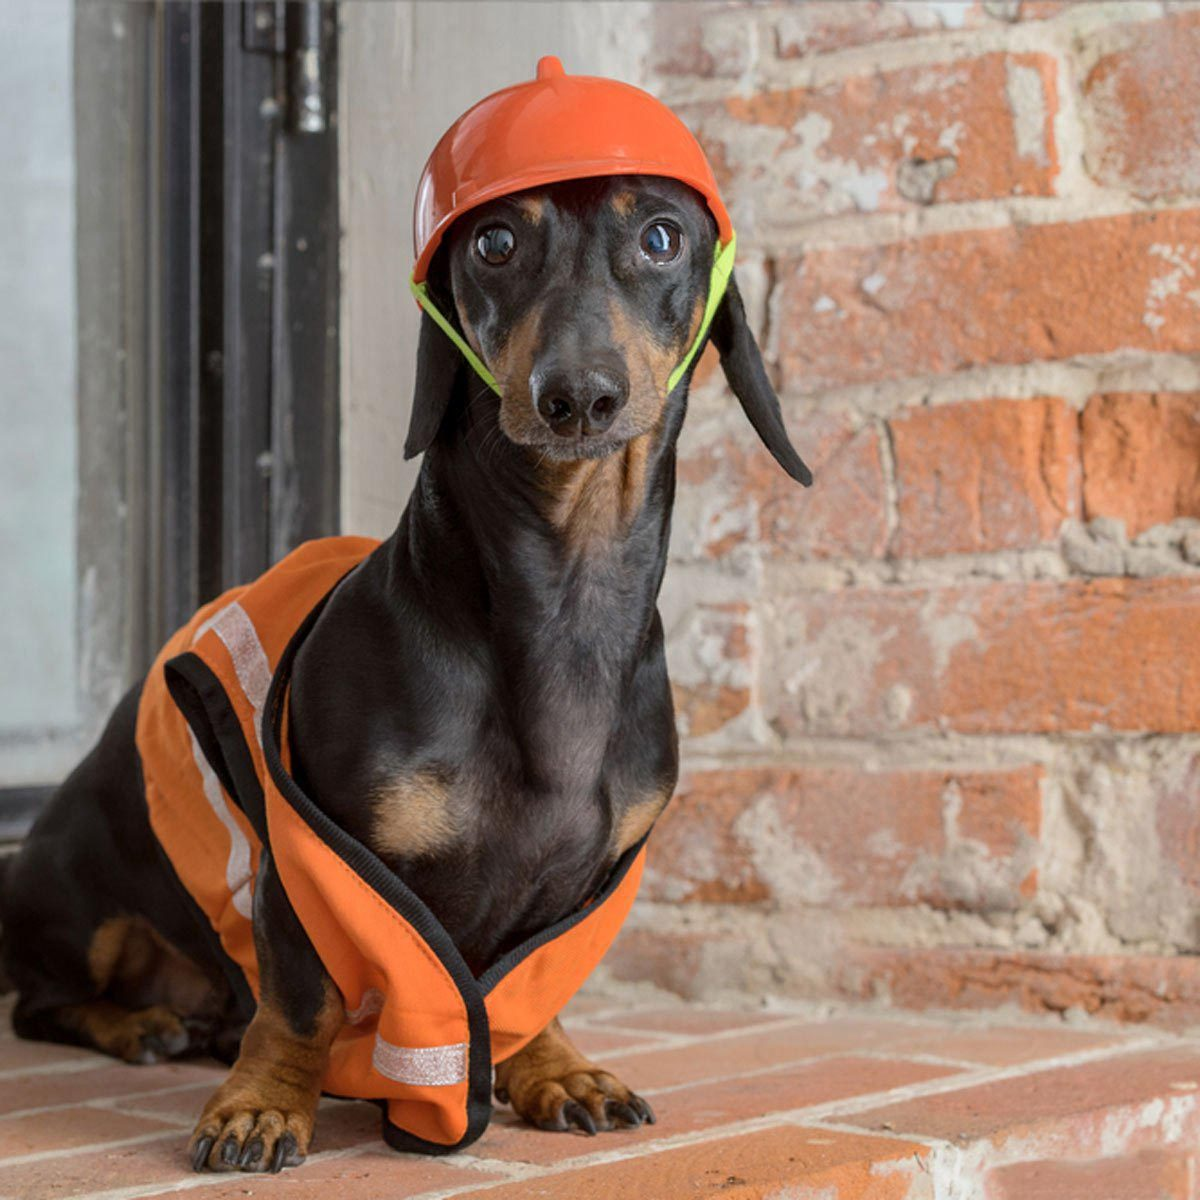 Dog picture: take this dachshund as is.